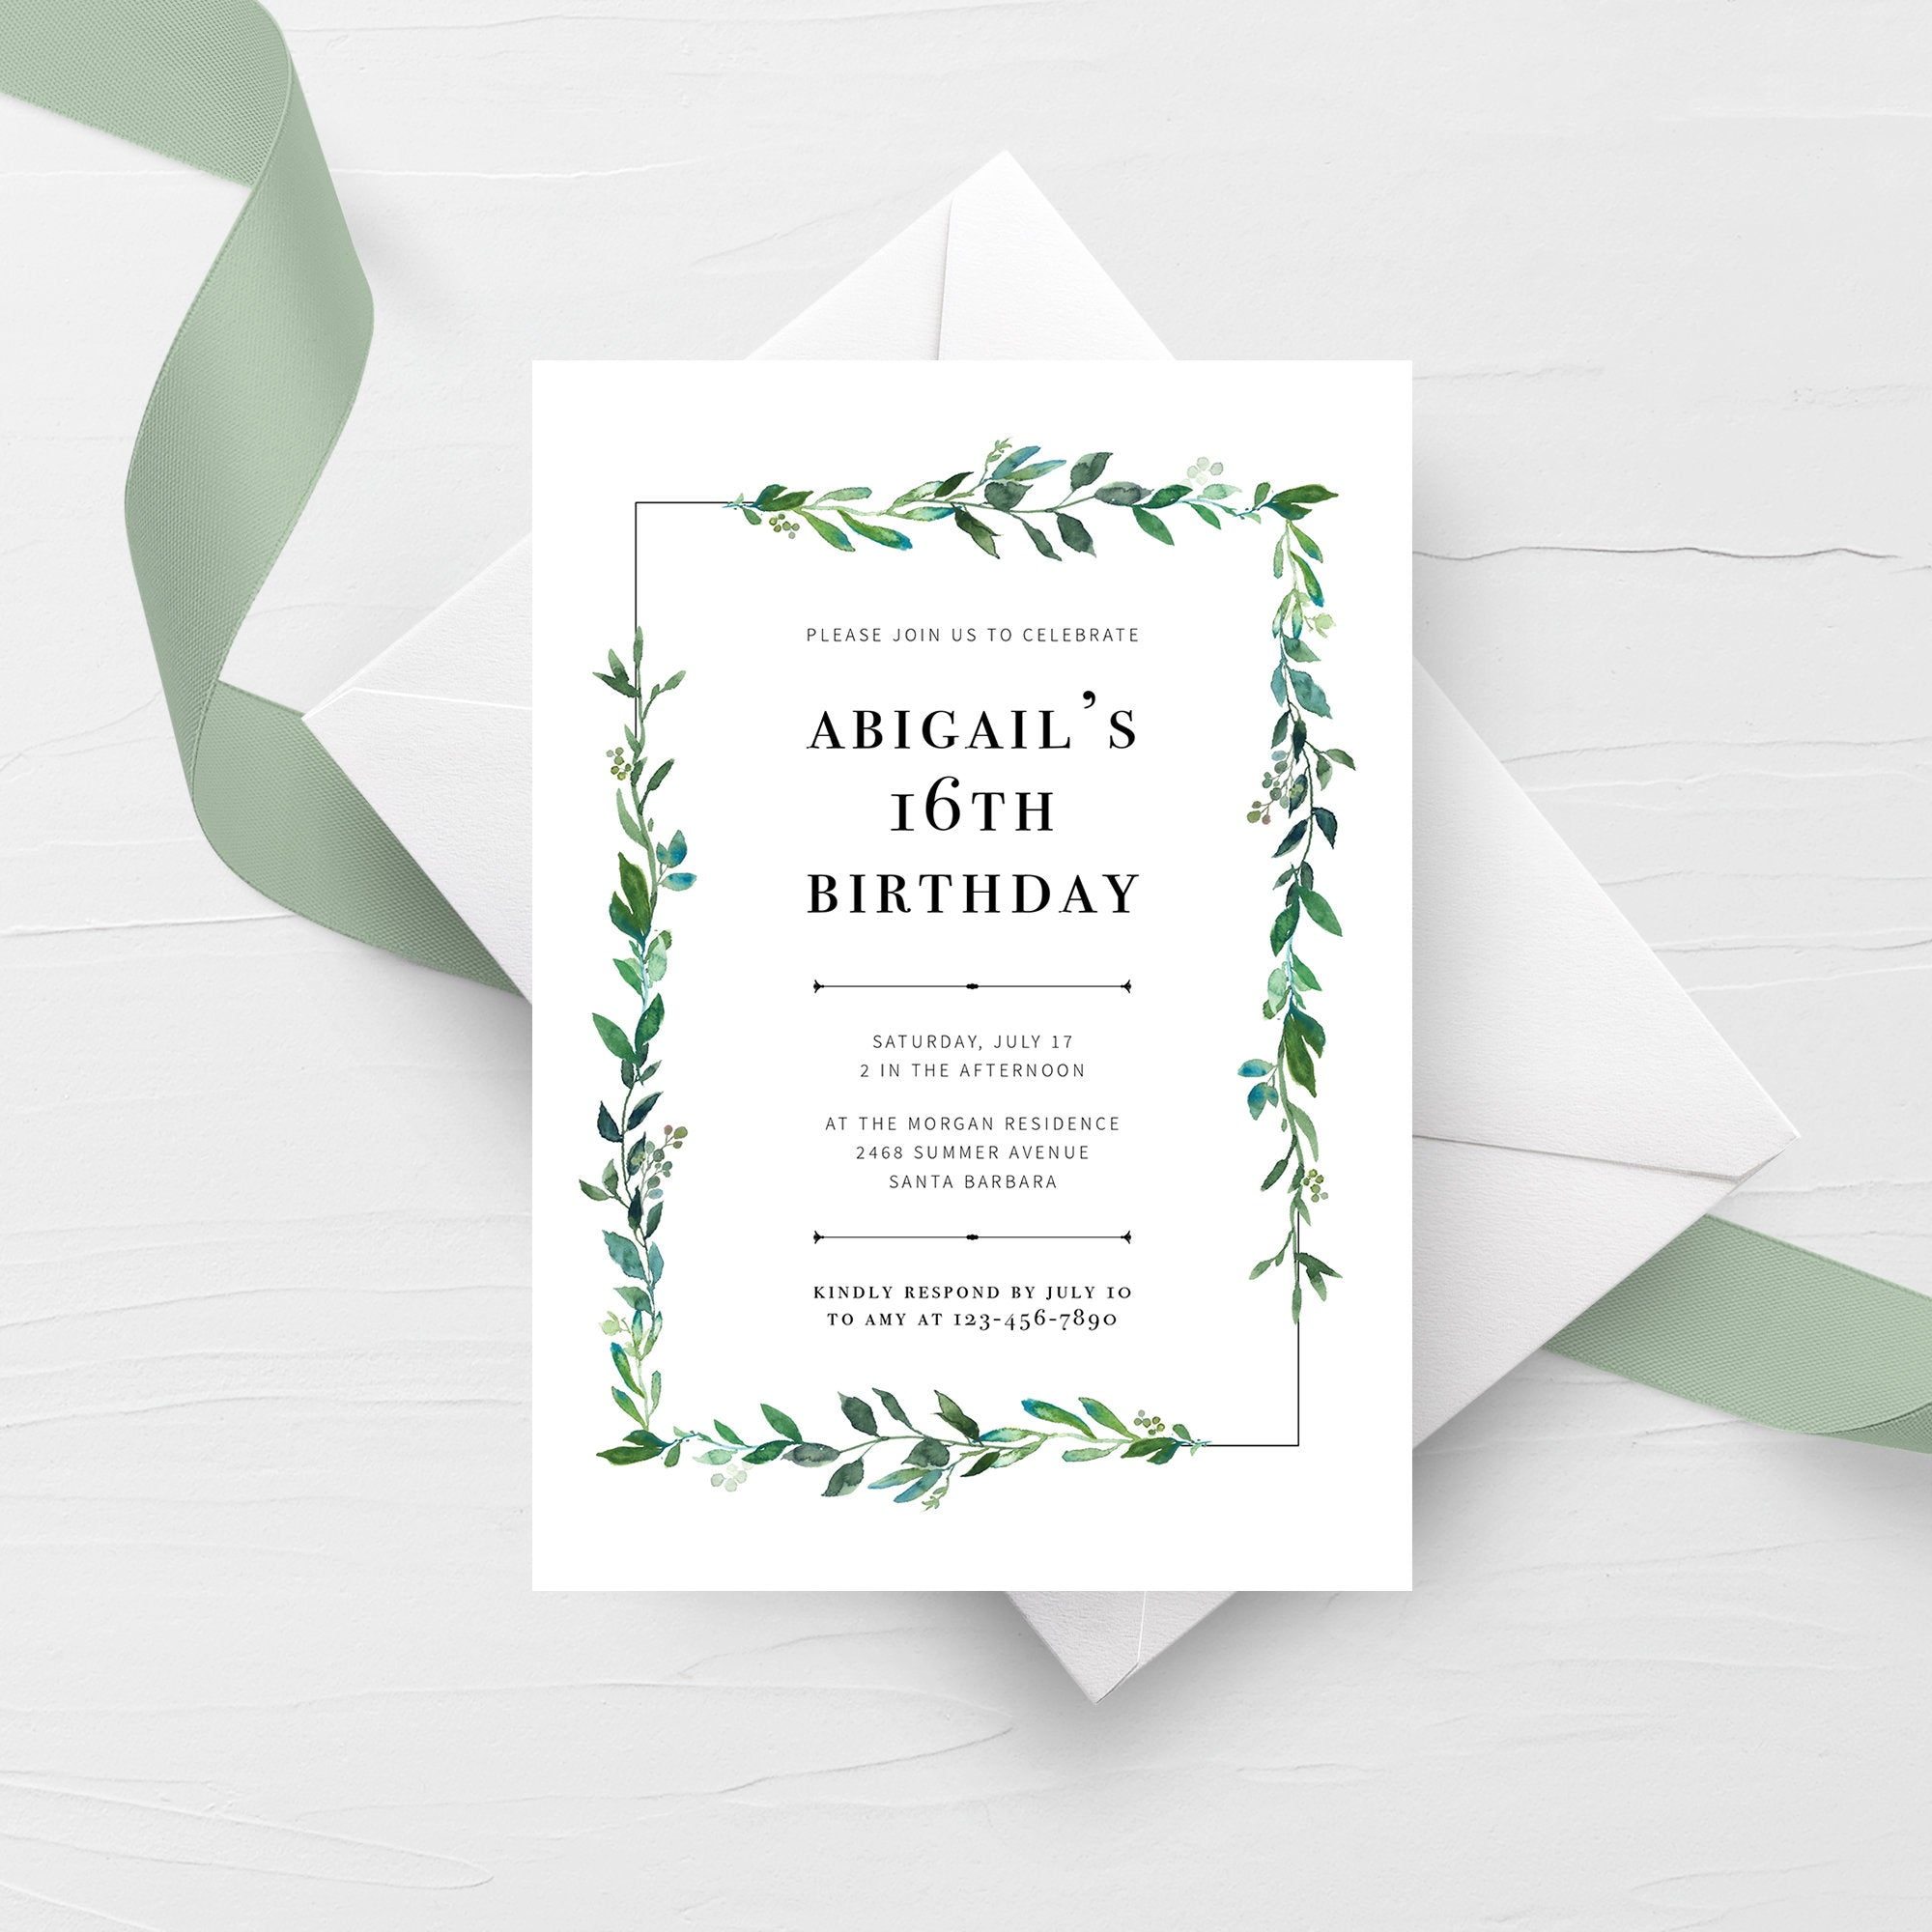 Greenery Birthday Party Invitation Template, Printable Birthday Invite, 16th Birthday Invitation Greenery, Greenery Invitation 5x7 G100